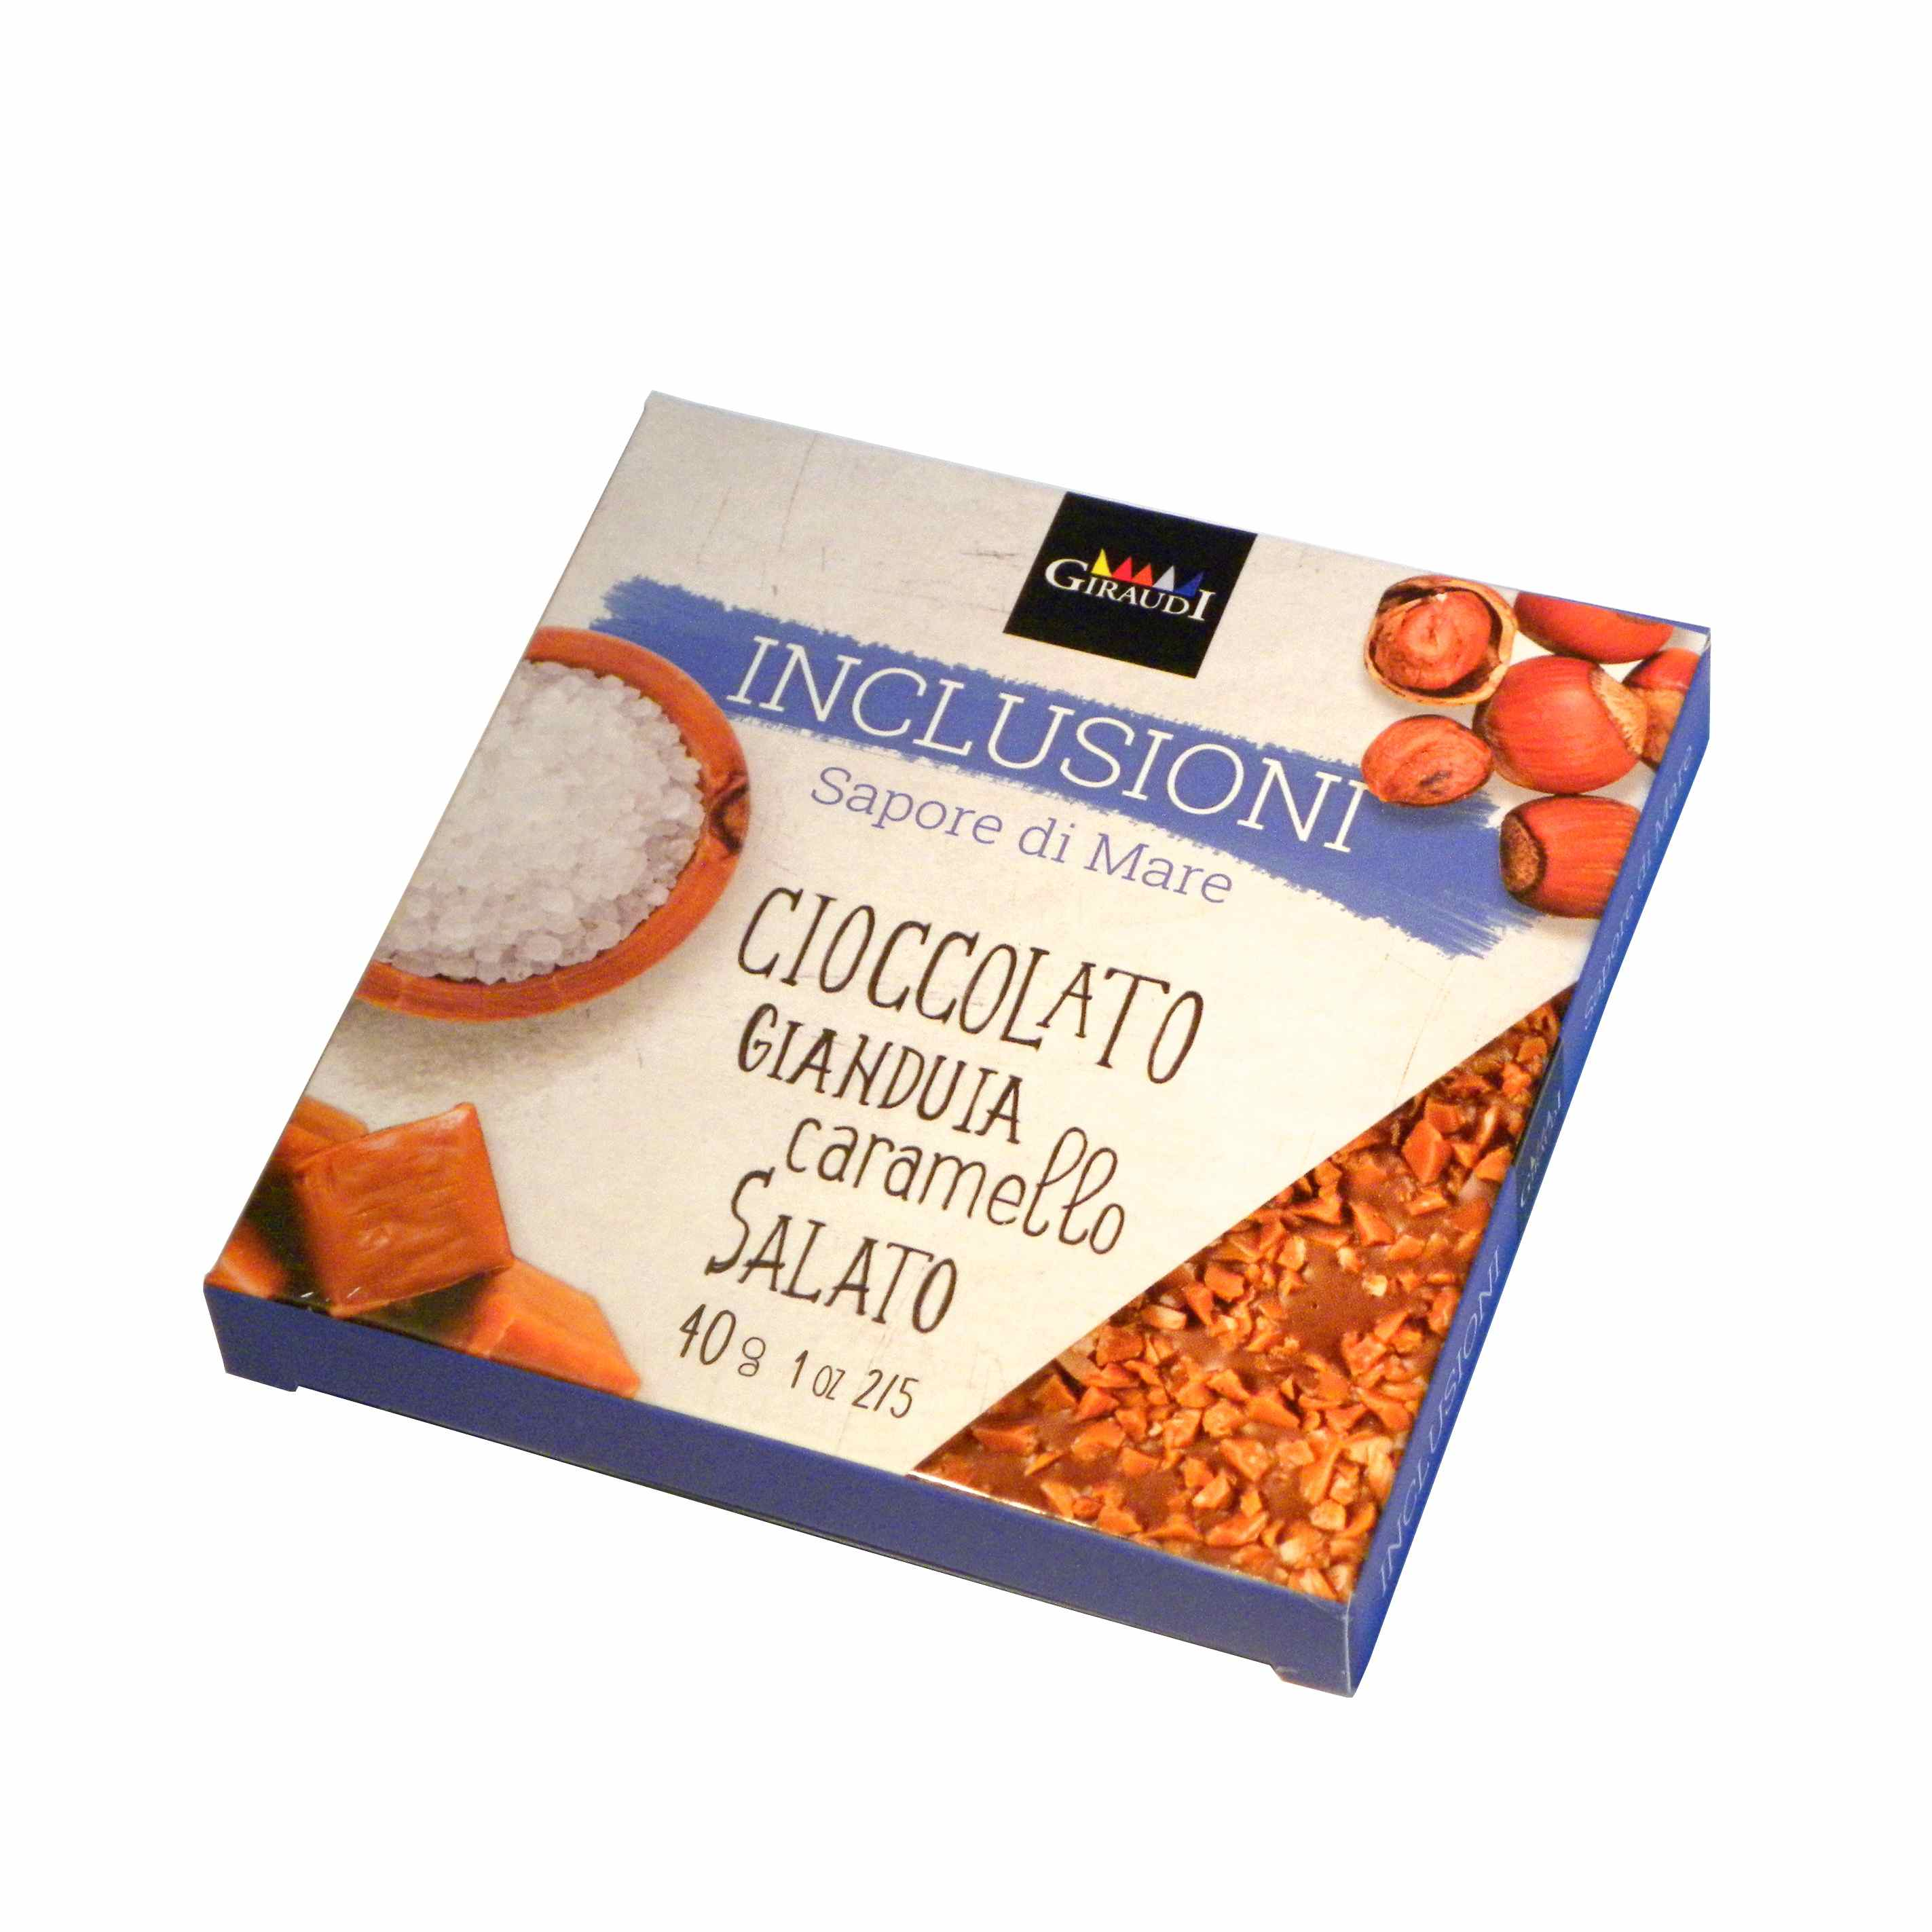 Giraudi tavoletta inclusioni gianduia caramello salato – Giraudi chocolate bar Gianduia with salted caramel  – Gustorotondo – Italian food boutique